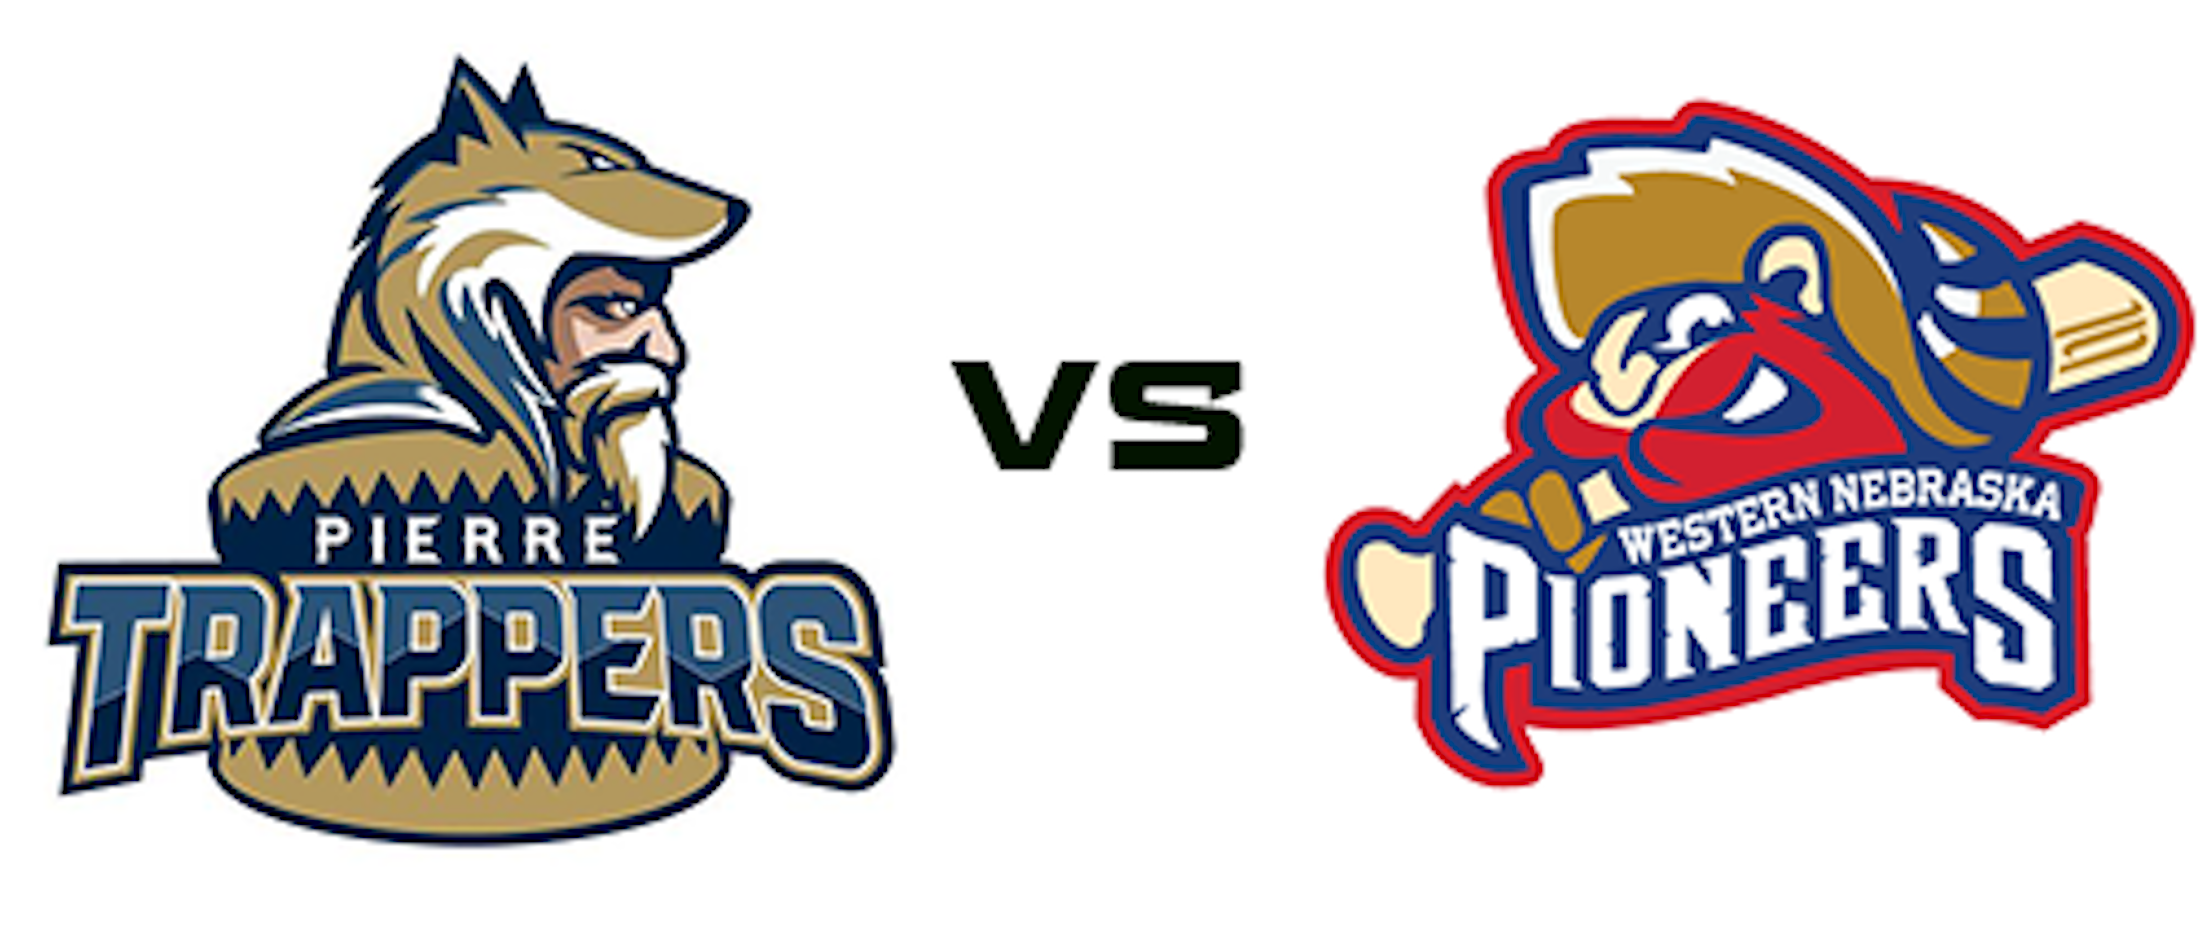 The Pierre Trappers logo faces the Western Pioneers logo.